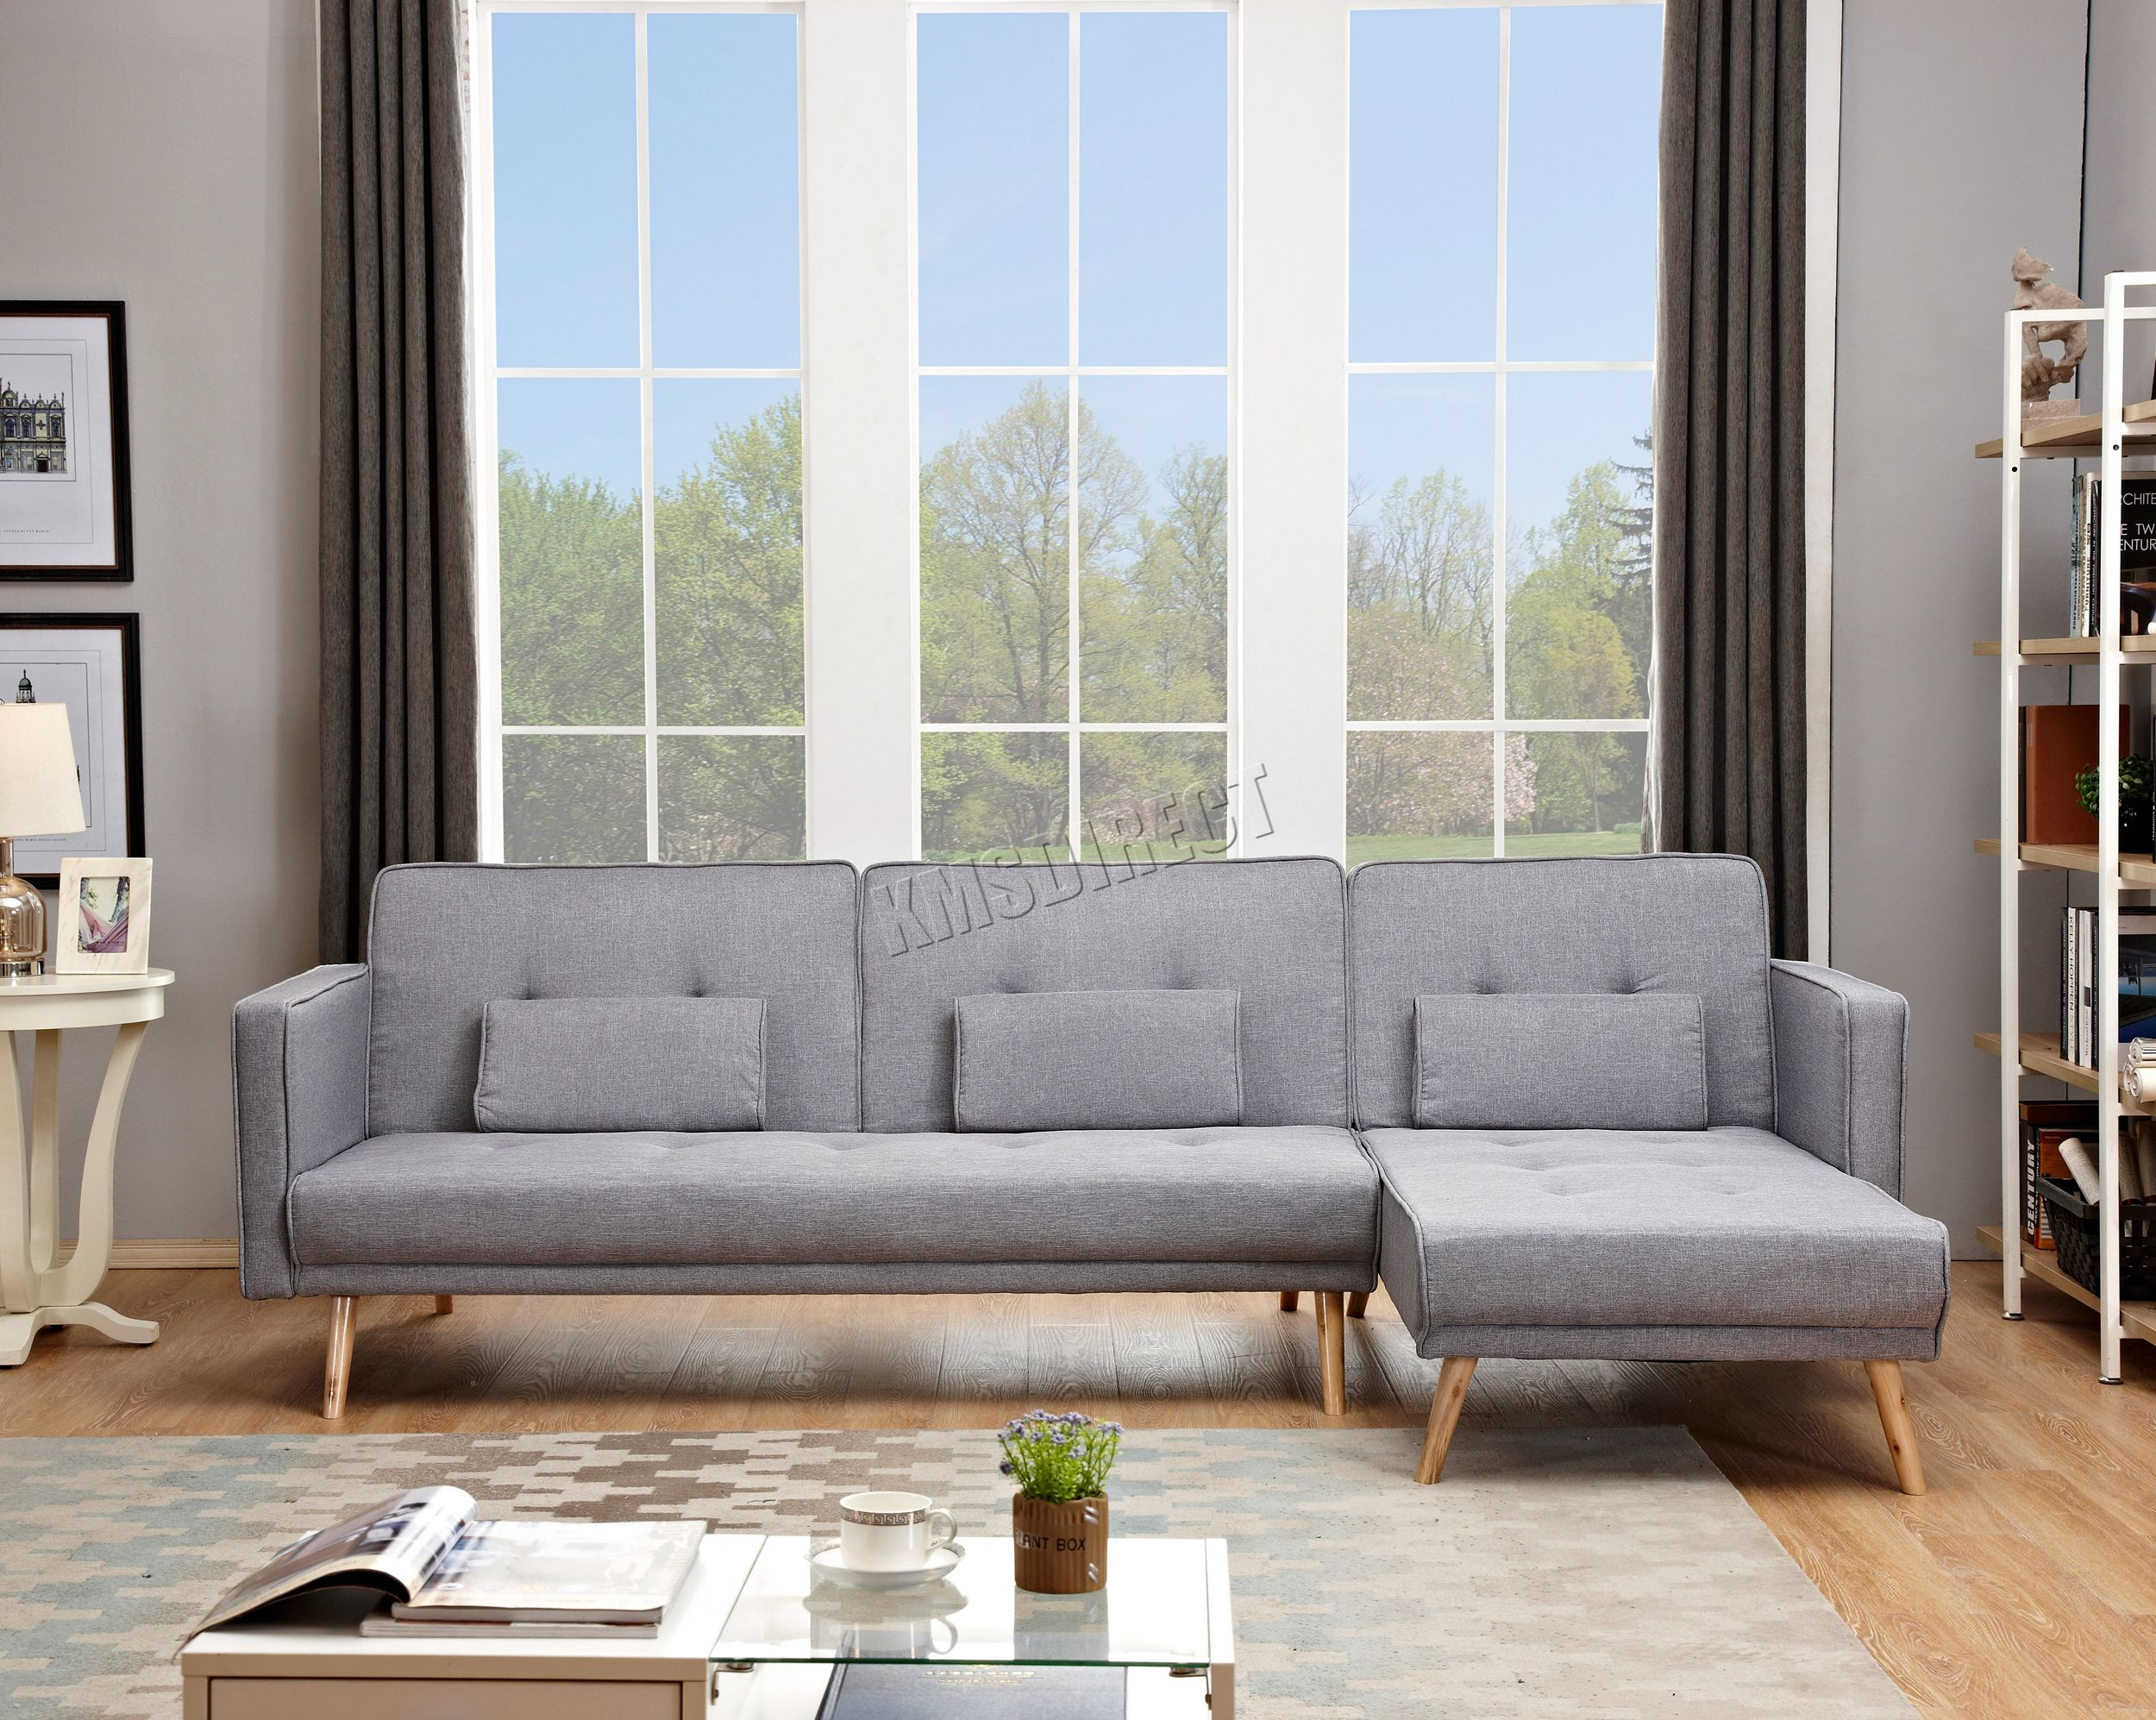 Wantaugh 3 Seater Sofa Bed Sectional sofa couch, Sofa, 3